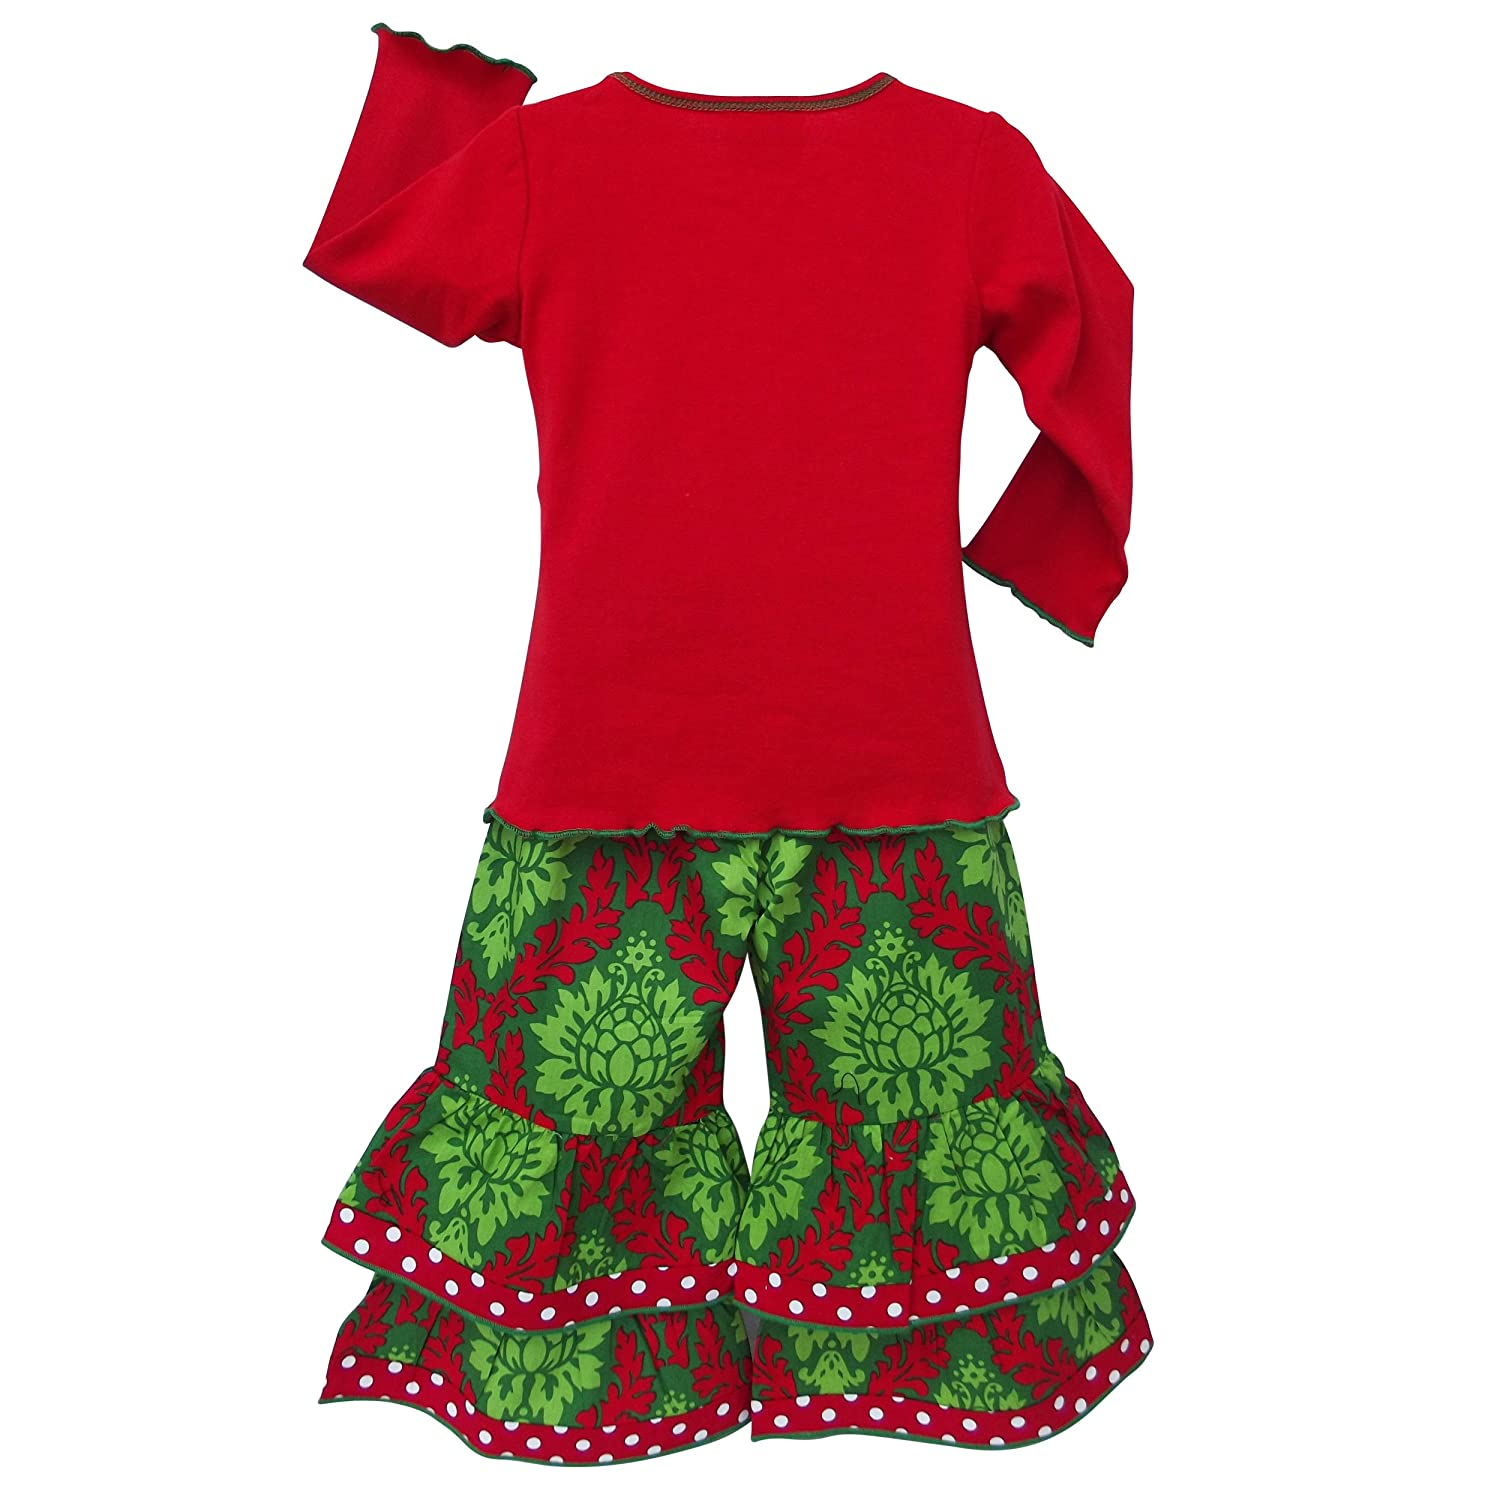 540be982e56 Amazon.com  AnnLoren Little Girls 4 5T Boutique Christmas Reindeer Holiday  Pants Set  Clothing